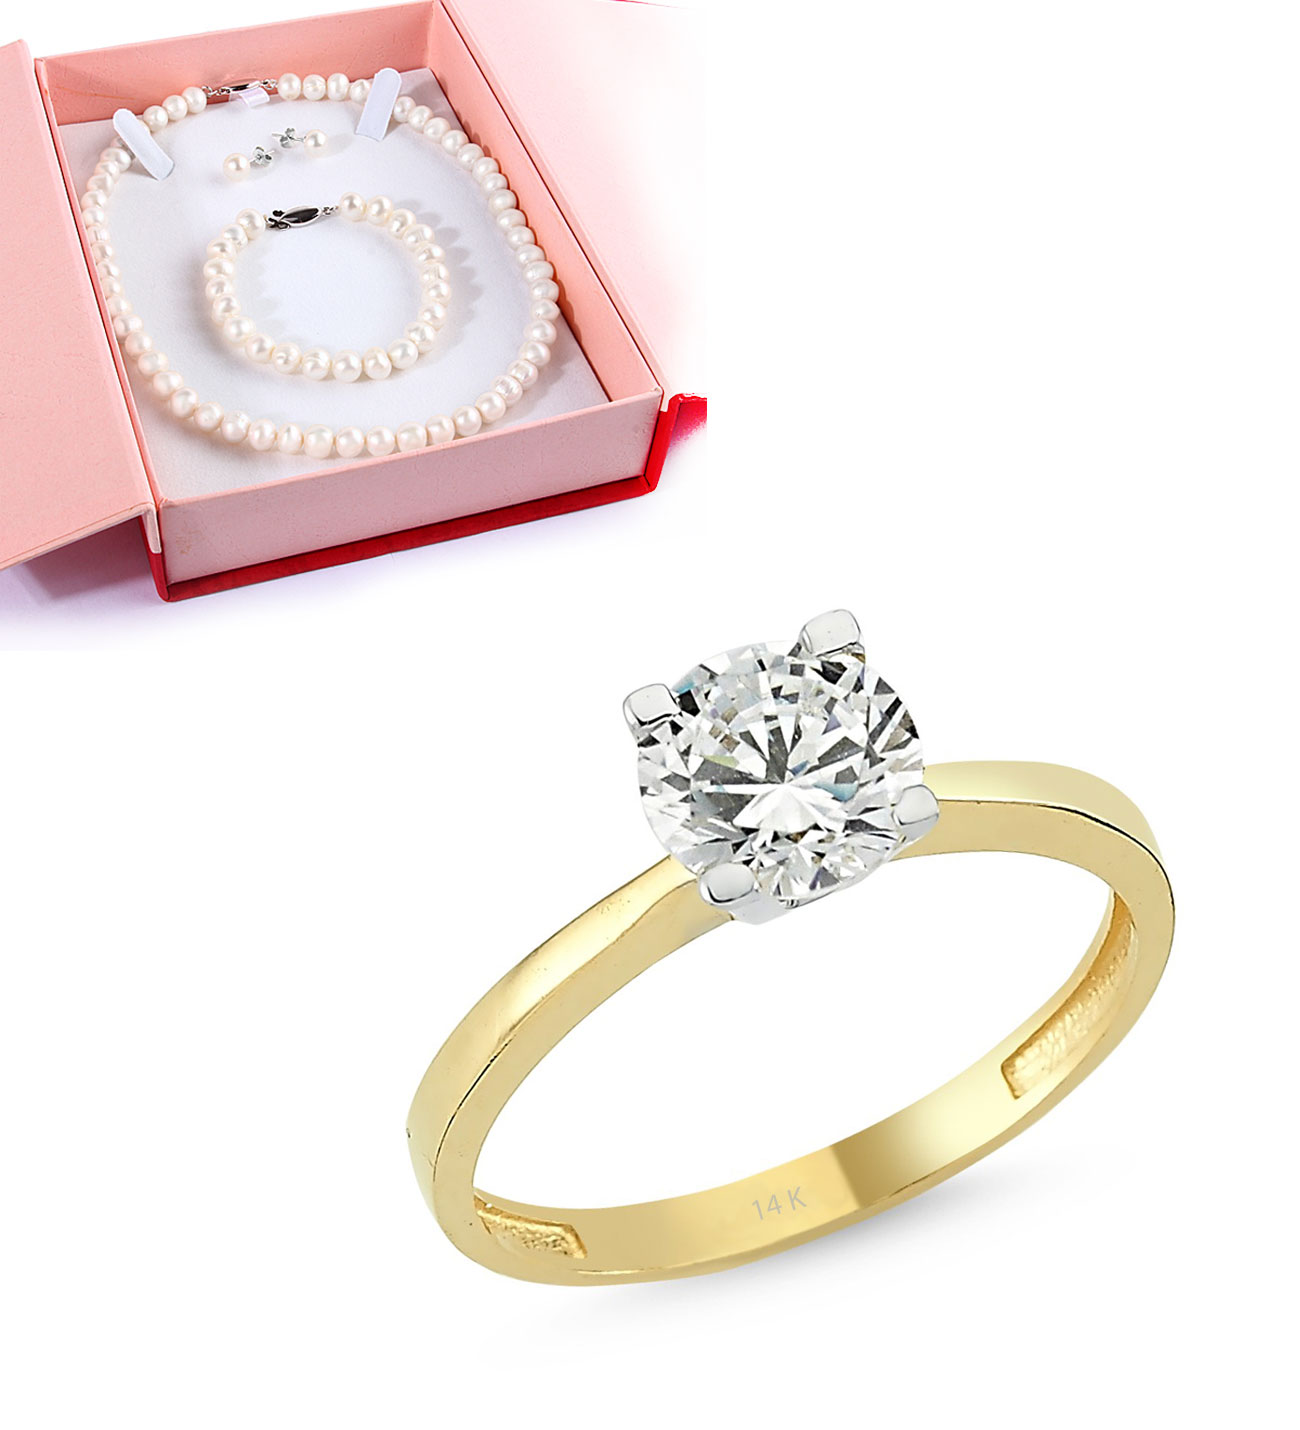 Gemmed Gold Ring- Pearl Necklace Gift